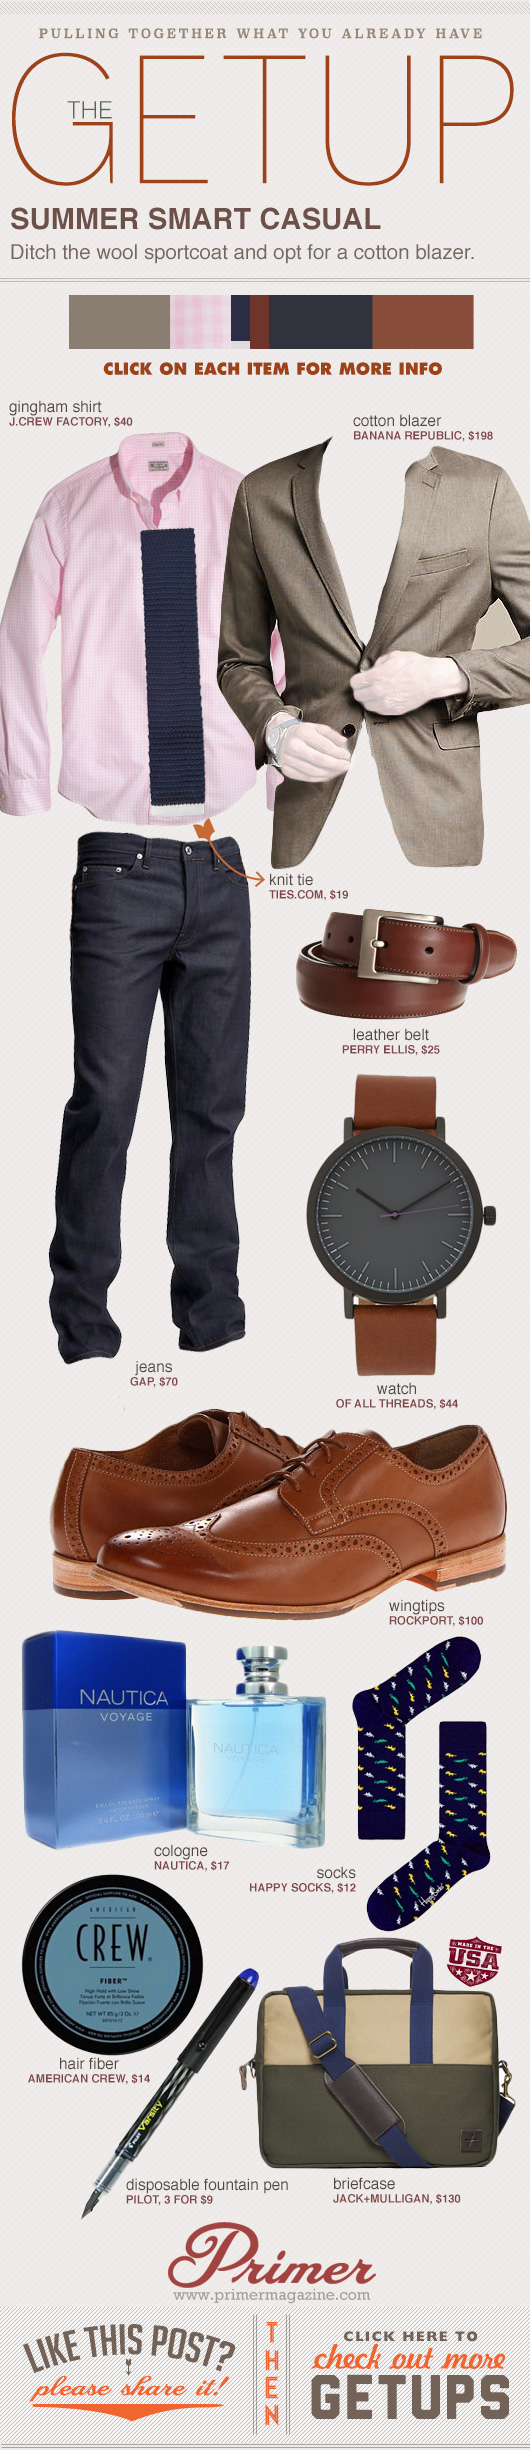 Getup Summer Smart Casual - Blazer with pink shirt, jeans, and brown shoes